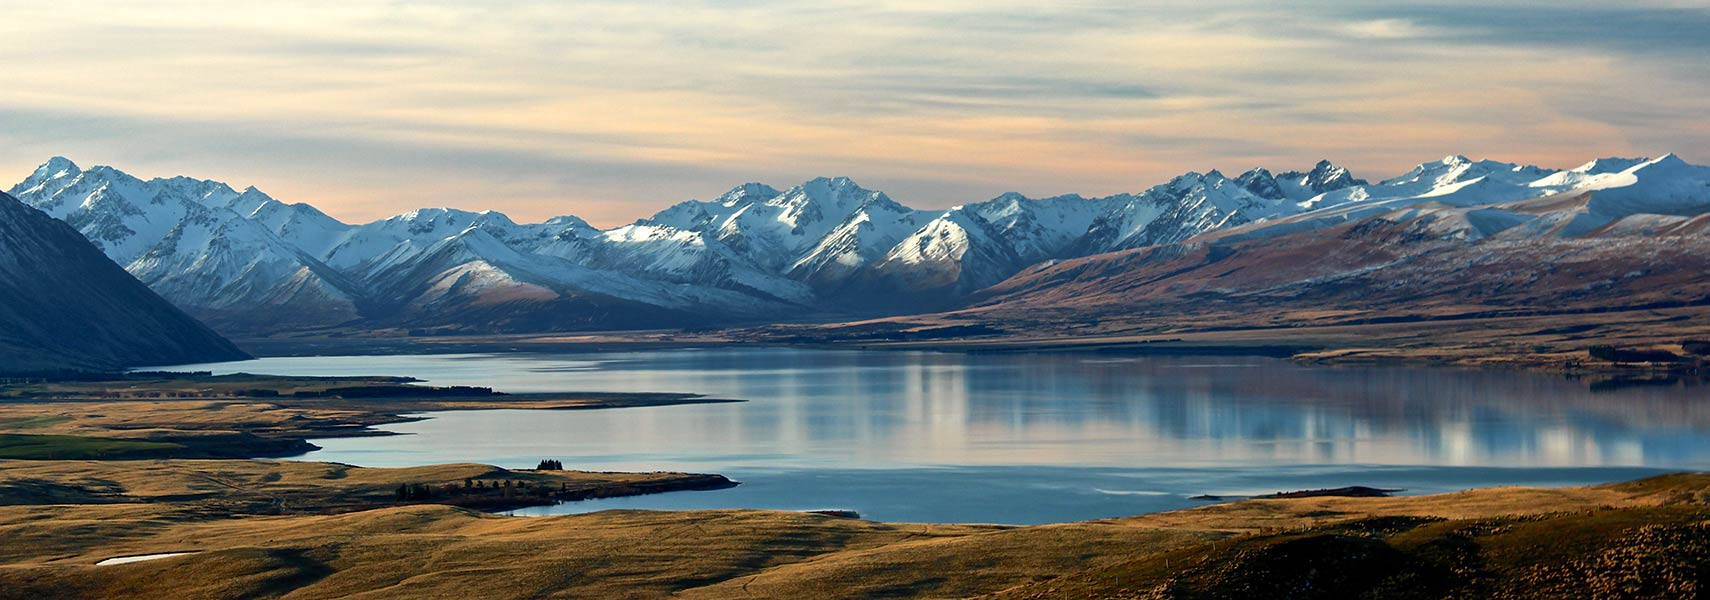 Lake Tekapo, and Southern Alps, South Island, New Zealand